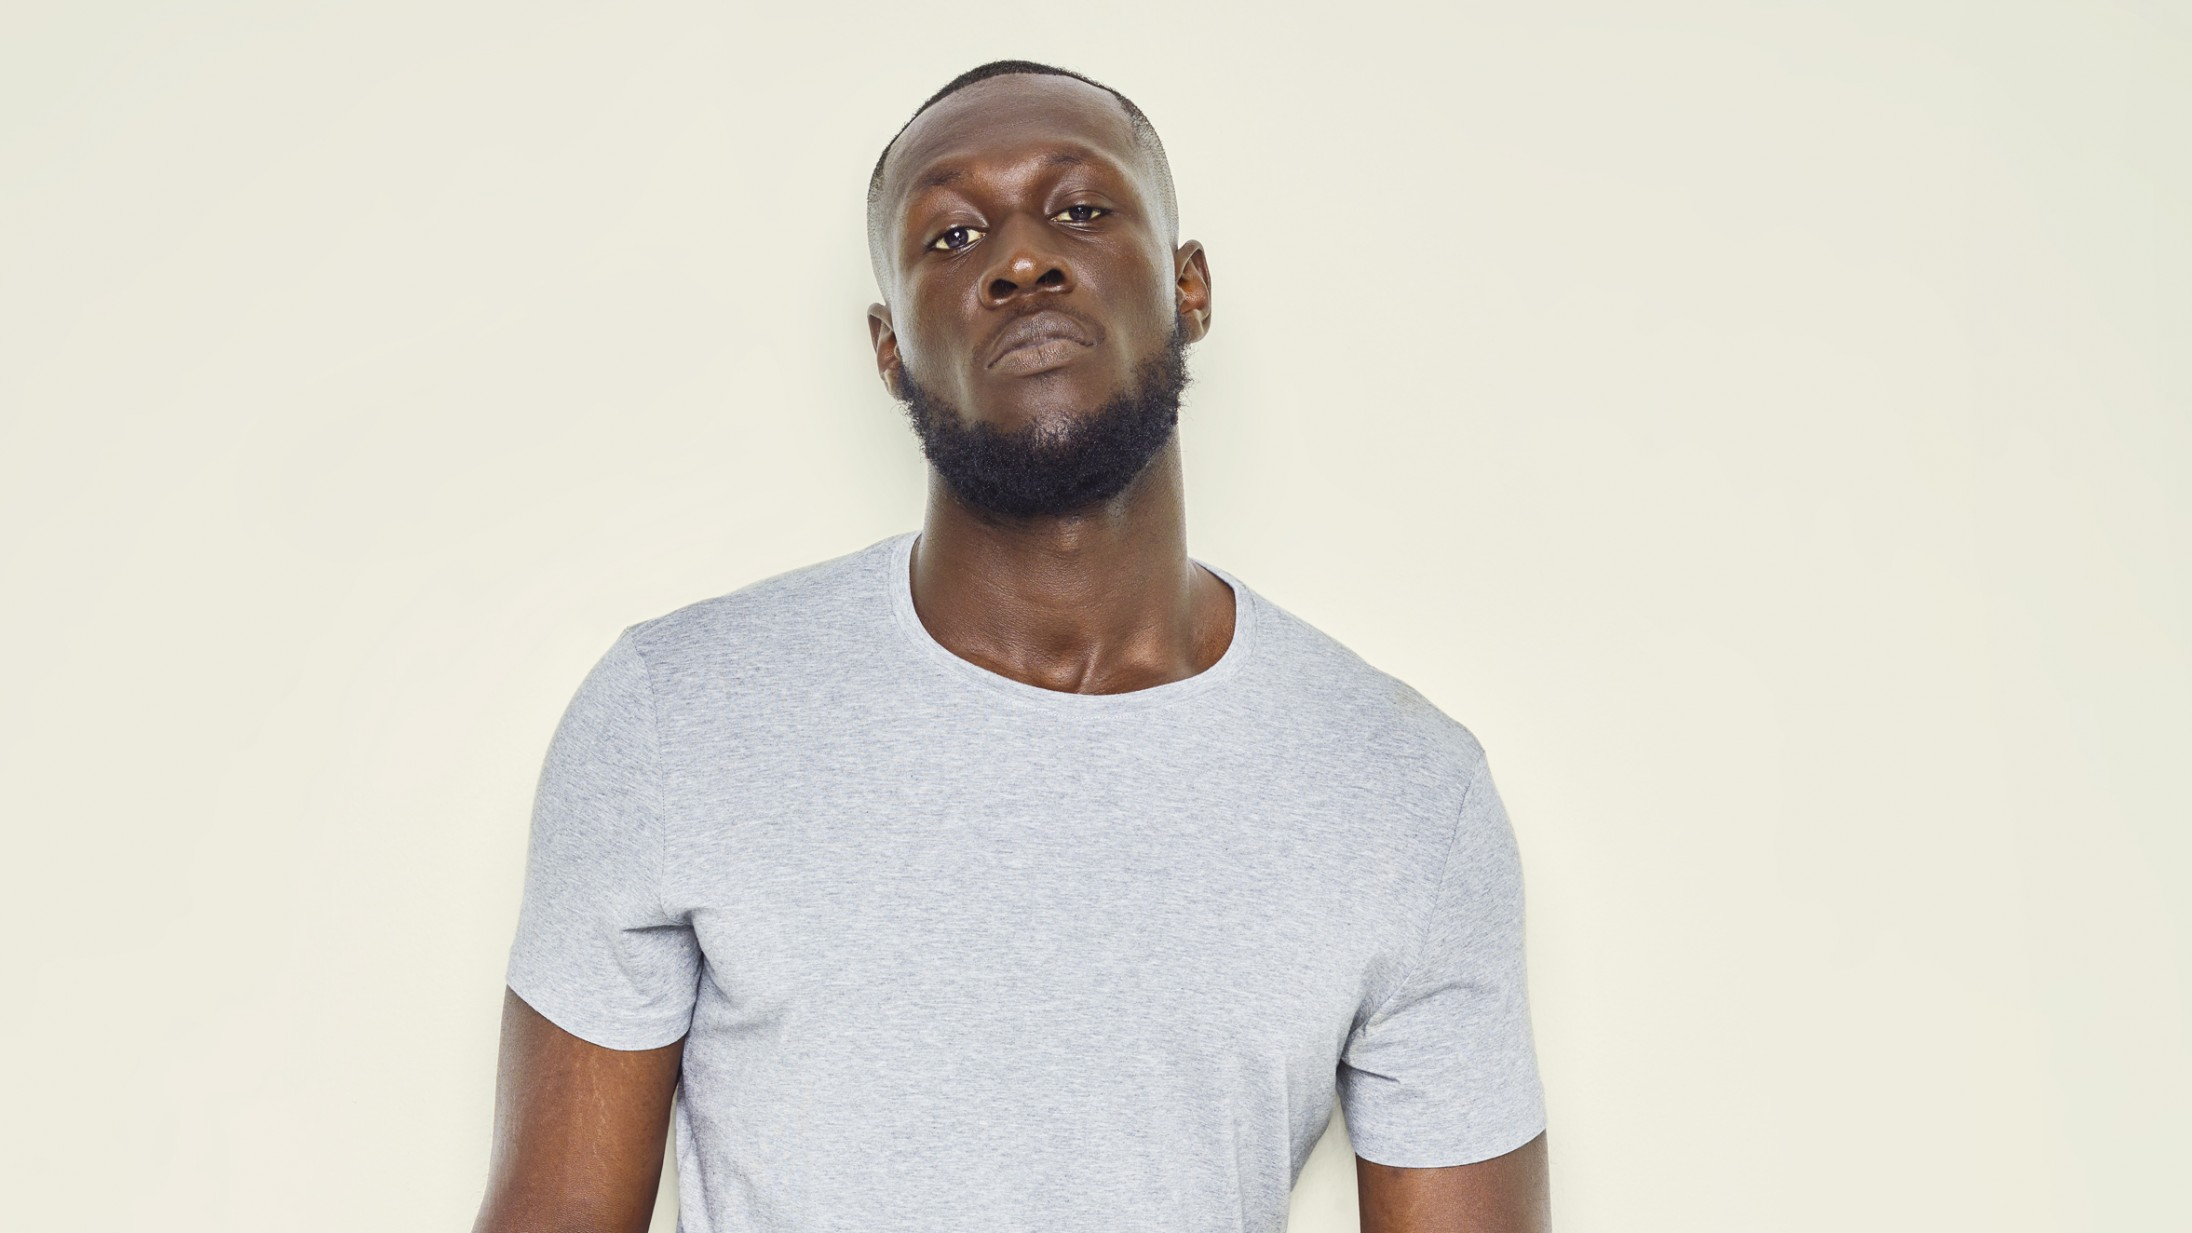 Det er fascinerende at se Stormzy vise sin skrøbelige side på 'Heavy Is the Head'